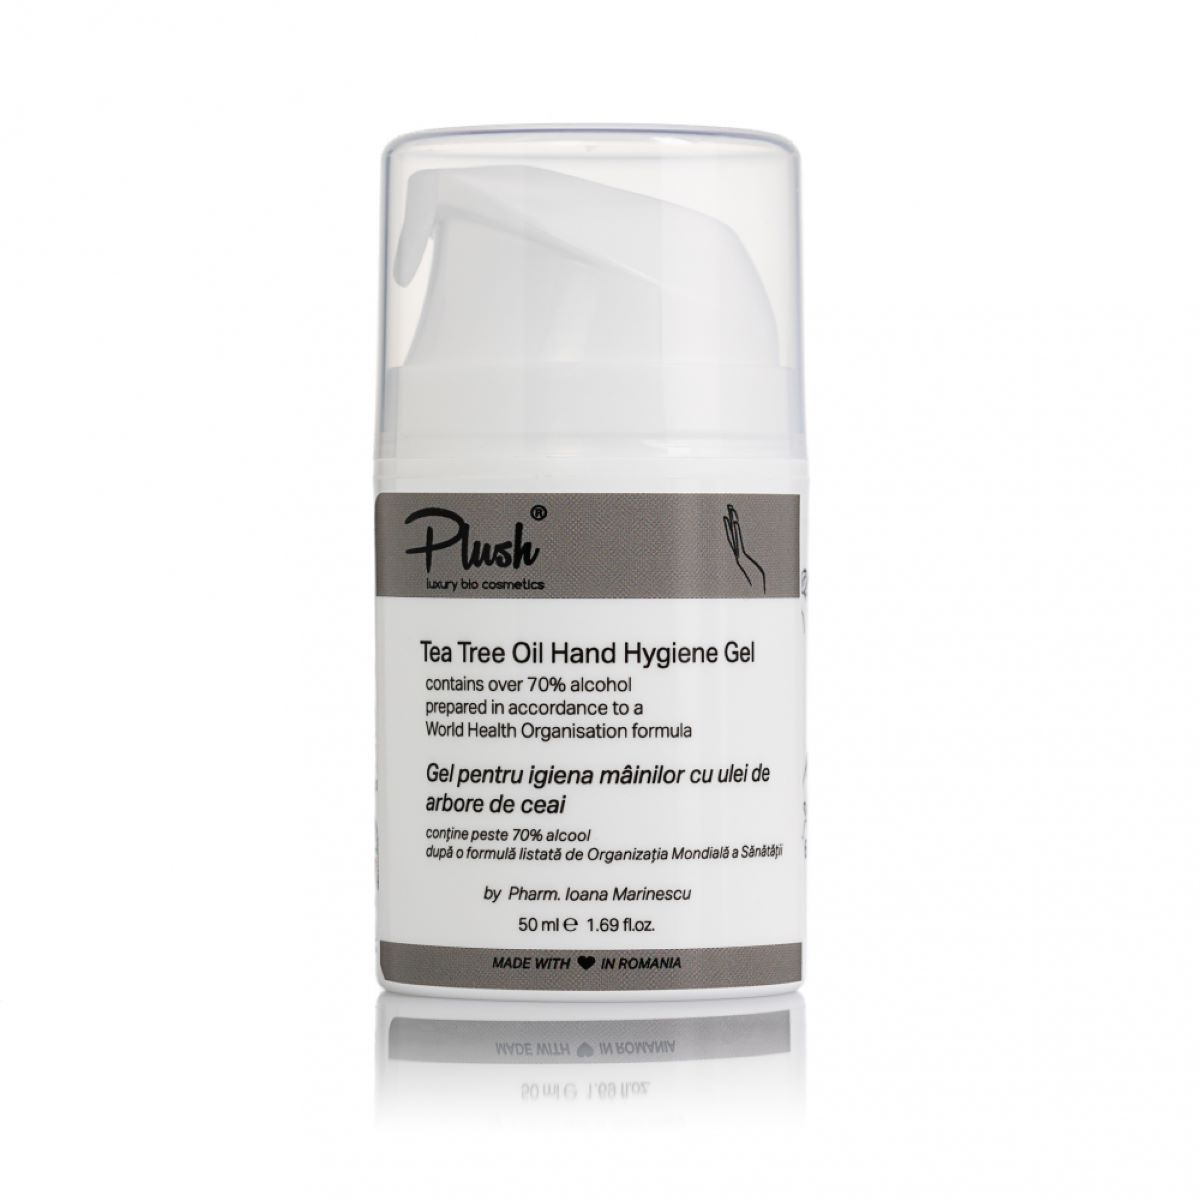 Tea Tree Oil Hand Hygiene Gel - cleans, sanitizes, disinfects and pleasantly perfumes - skin type: all (50 ml)